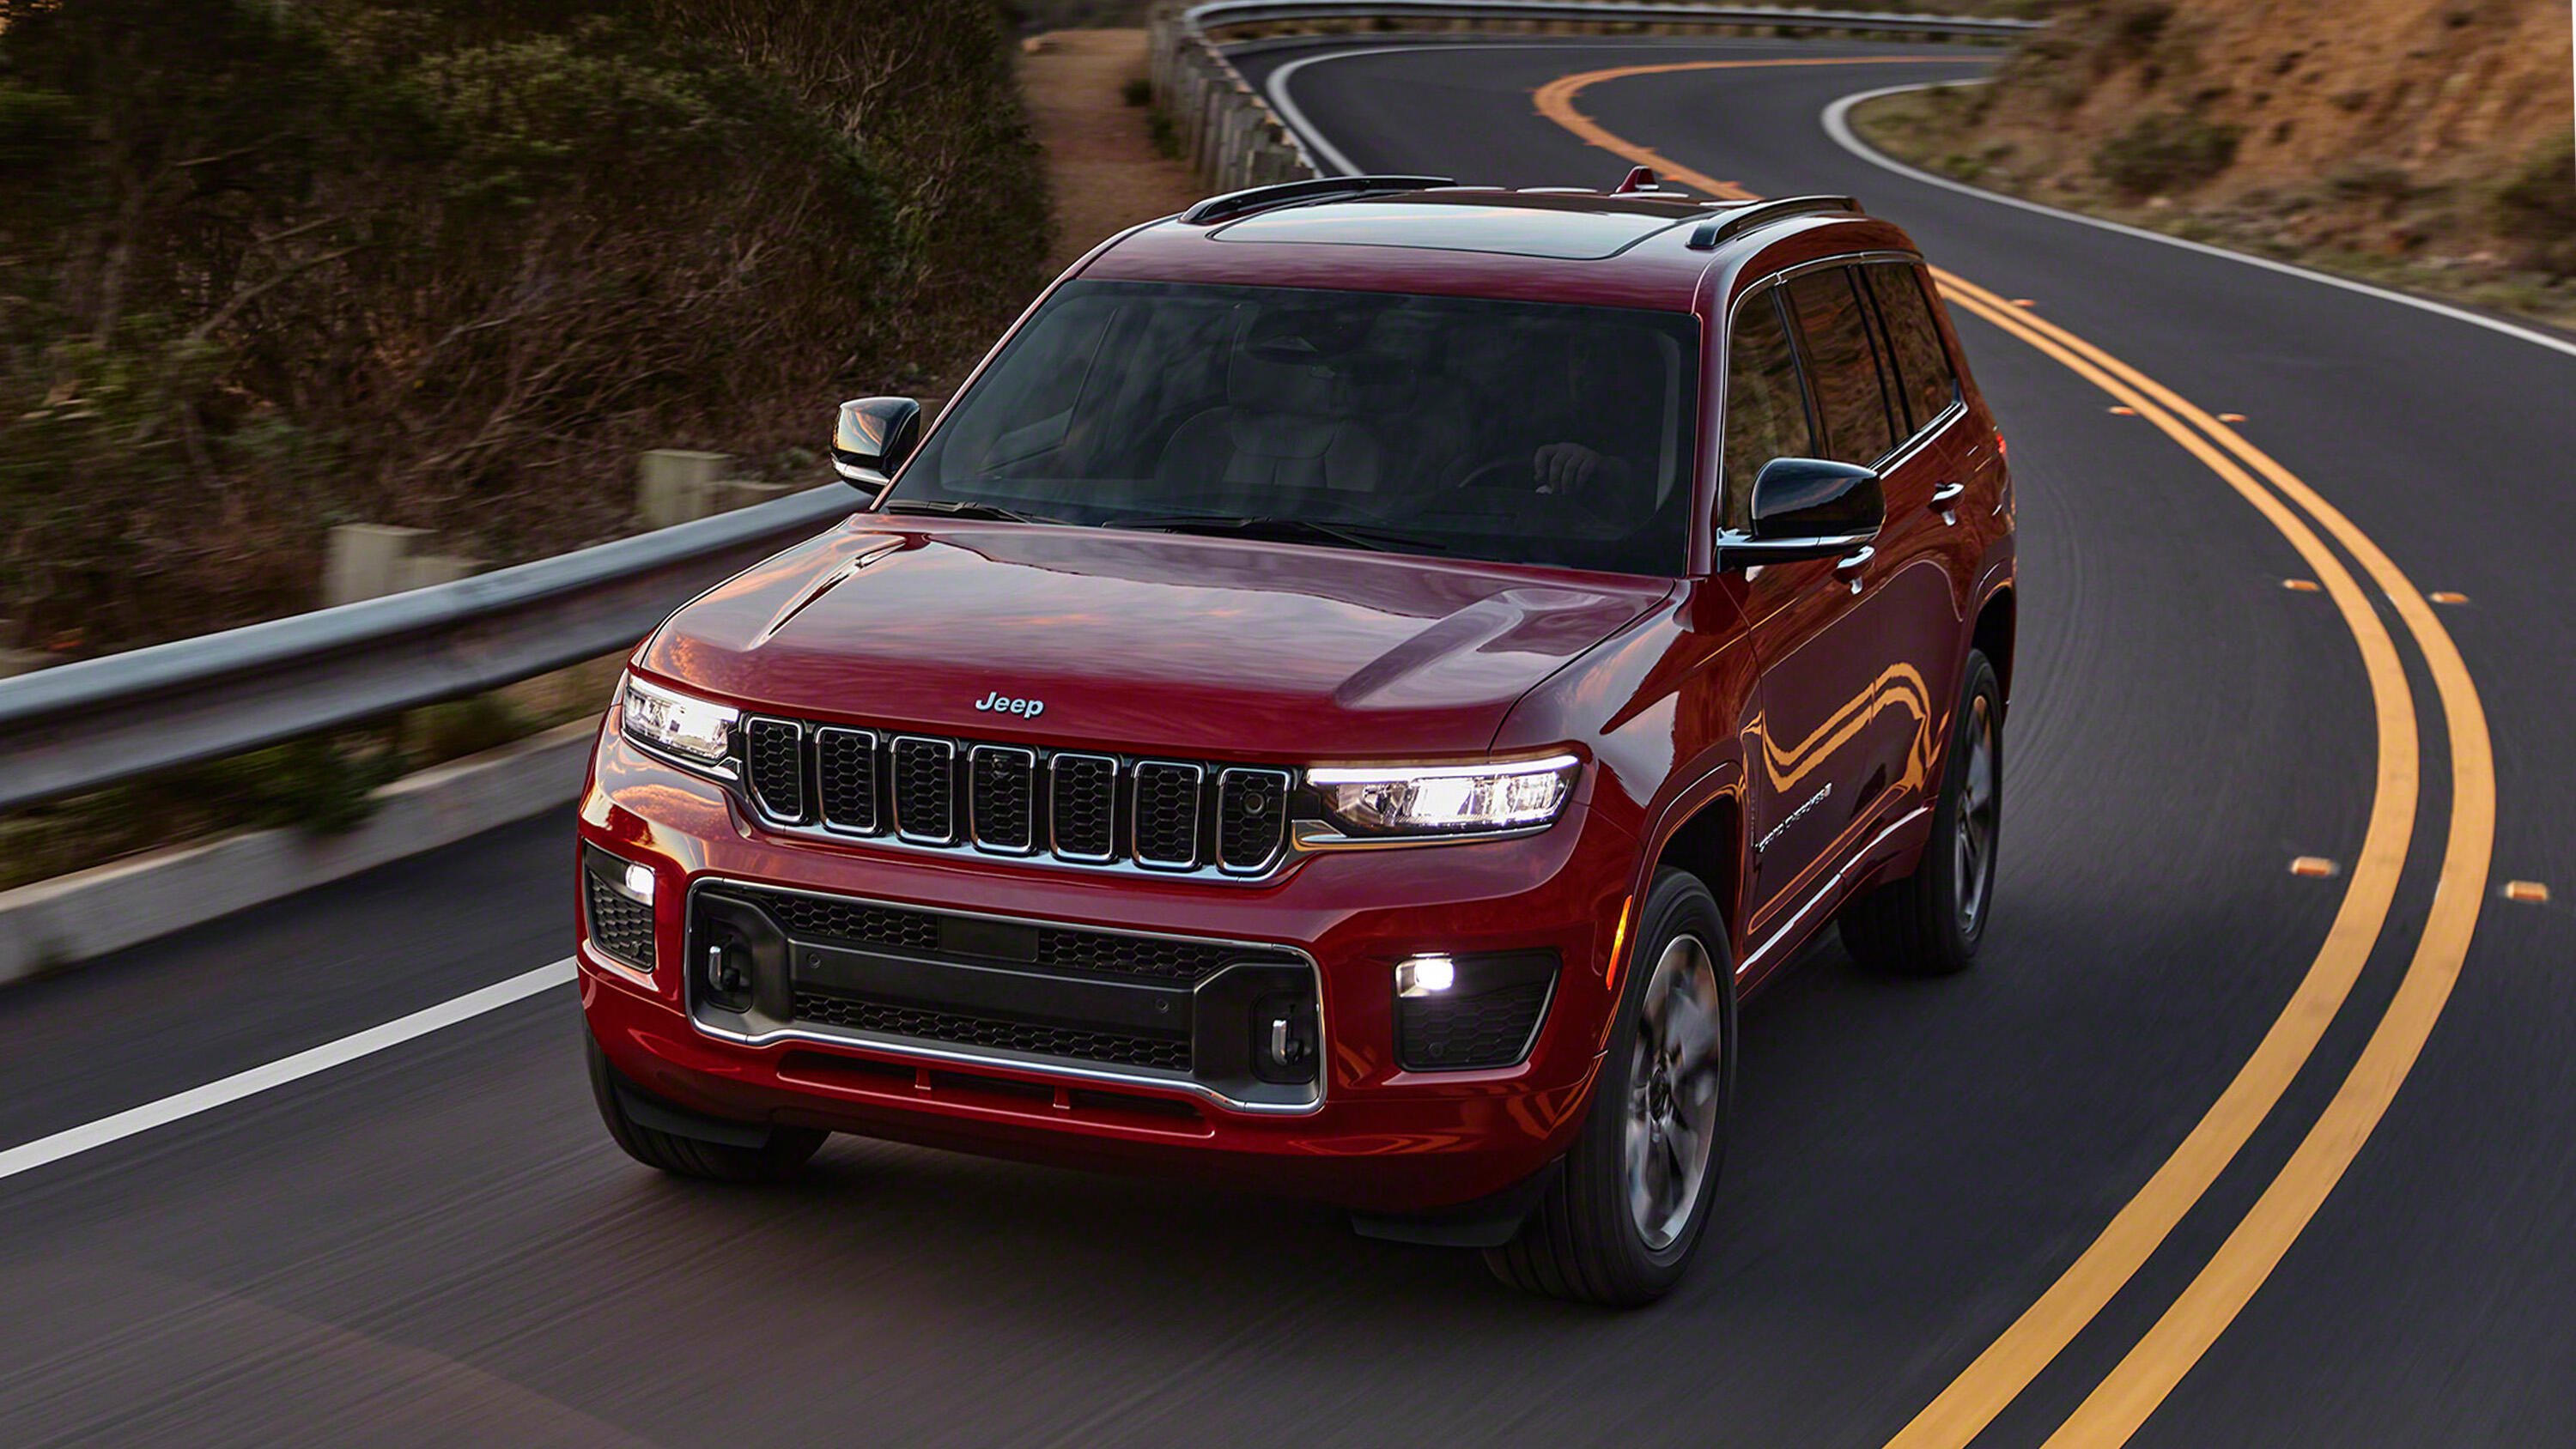 Video: Jeep shows off the three-row 2021 Jeep Grand Cherokee